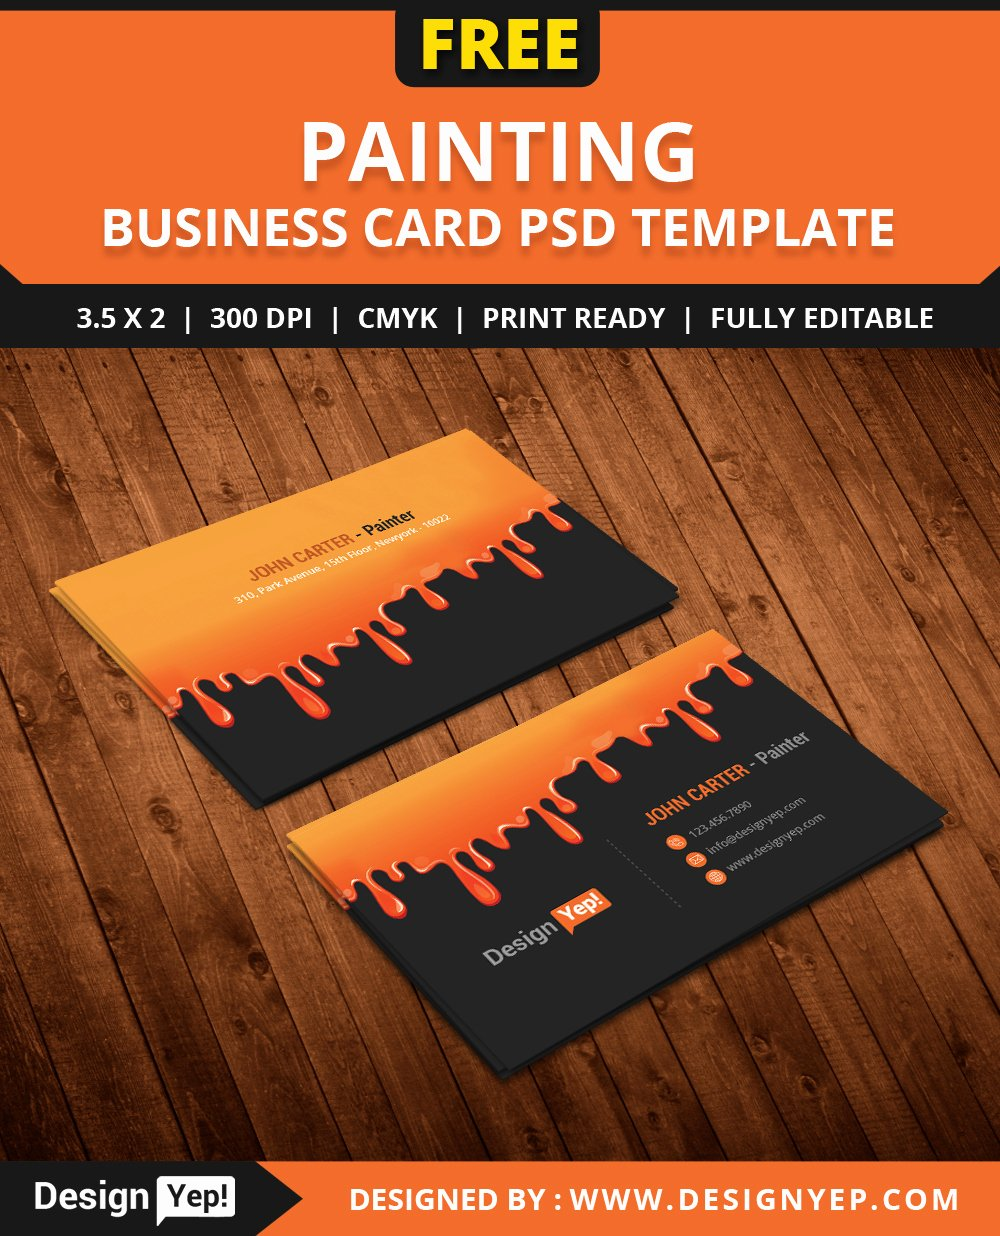 Business Cards for Painters Beautiful Free Painting Business Card Psd Template Designyep